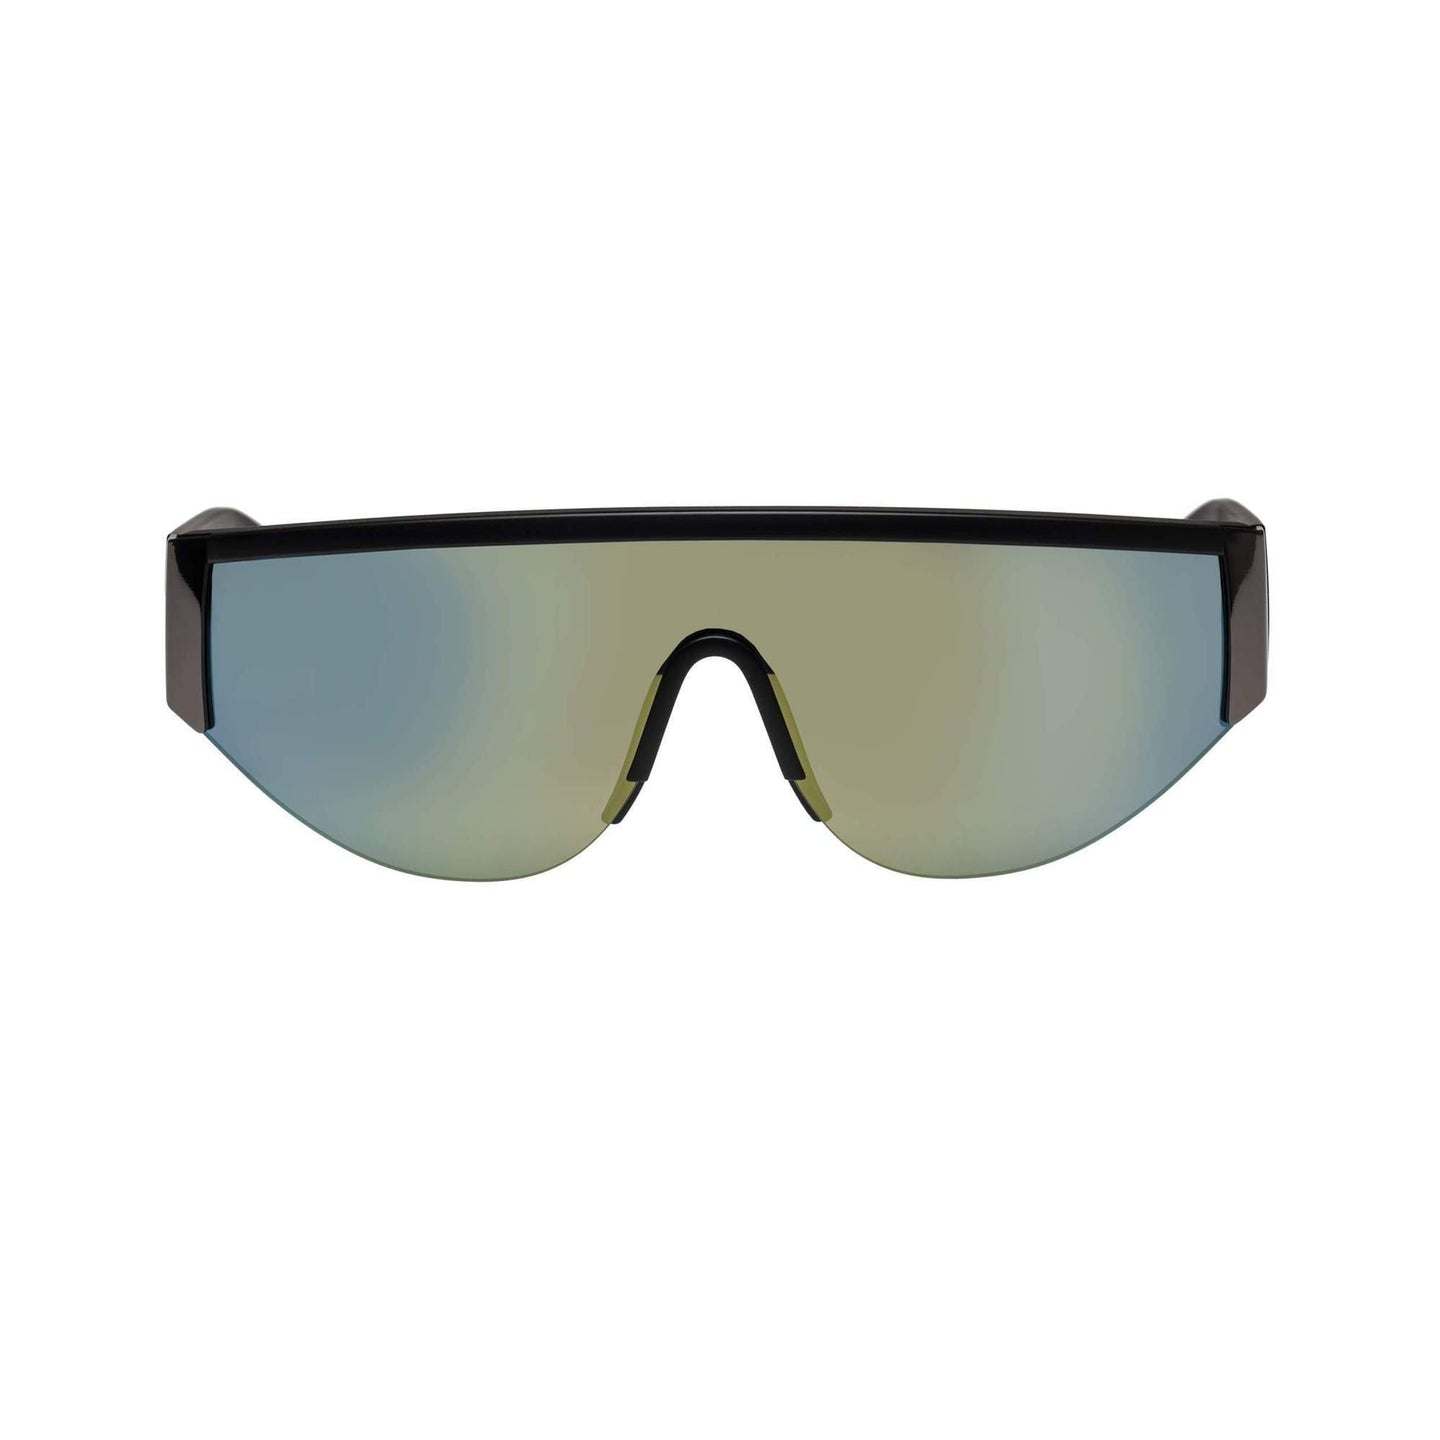 Viper Sunglasses / Neighborhood Goods